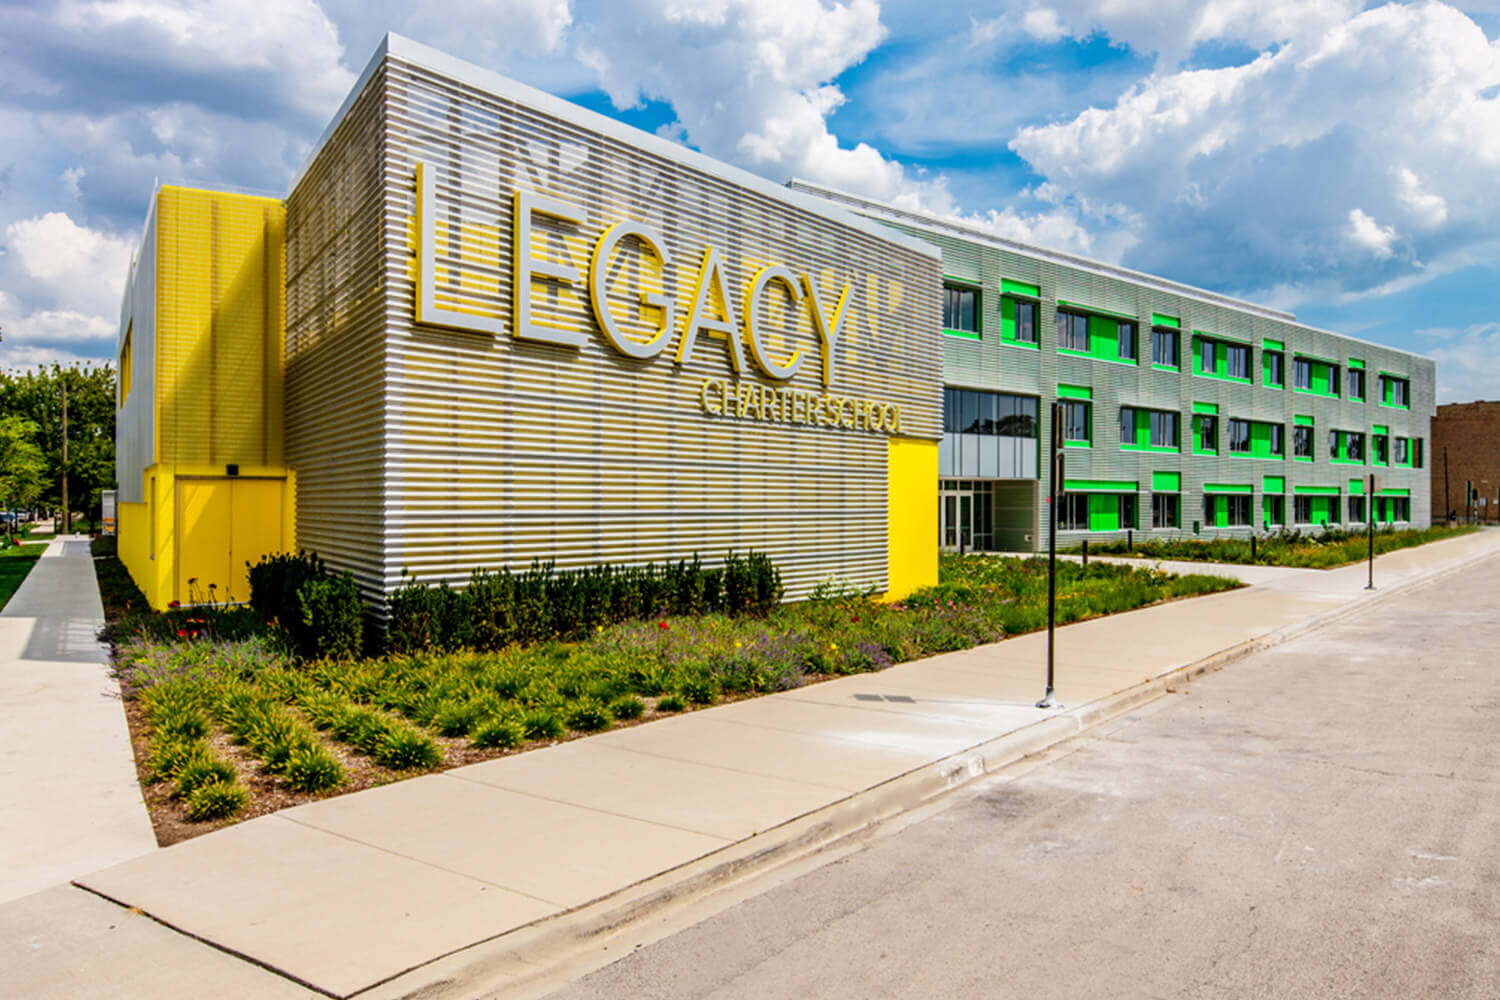 Legacy Charter School exterior